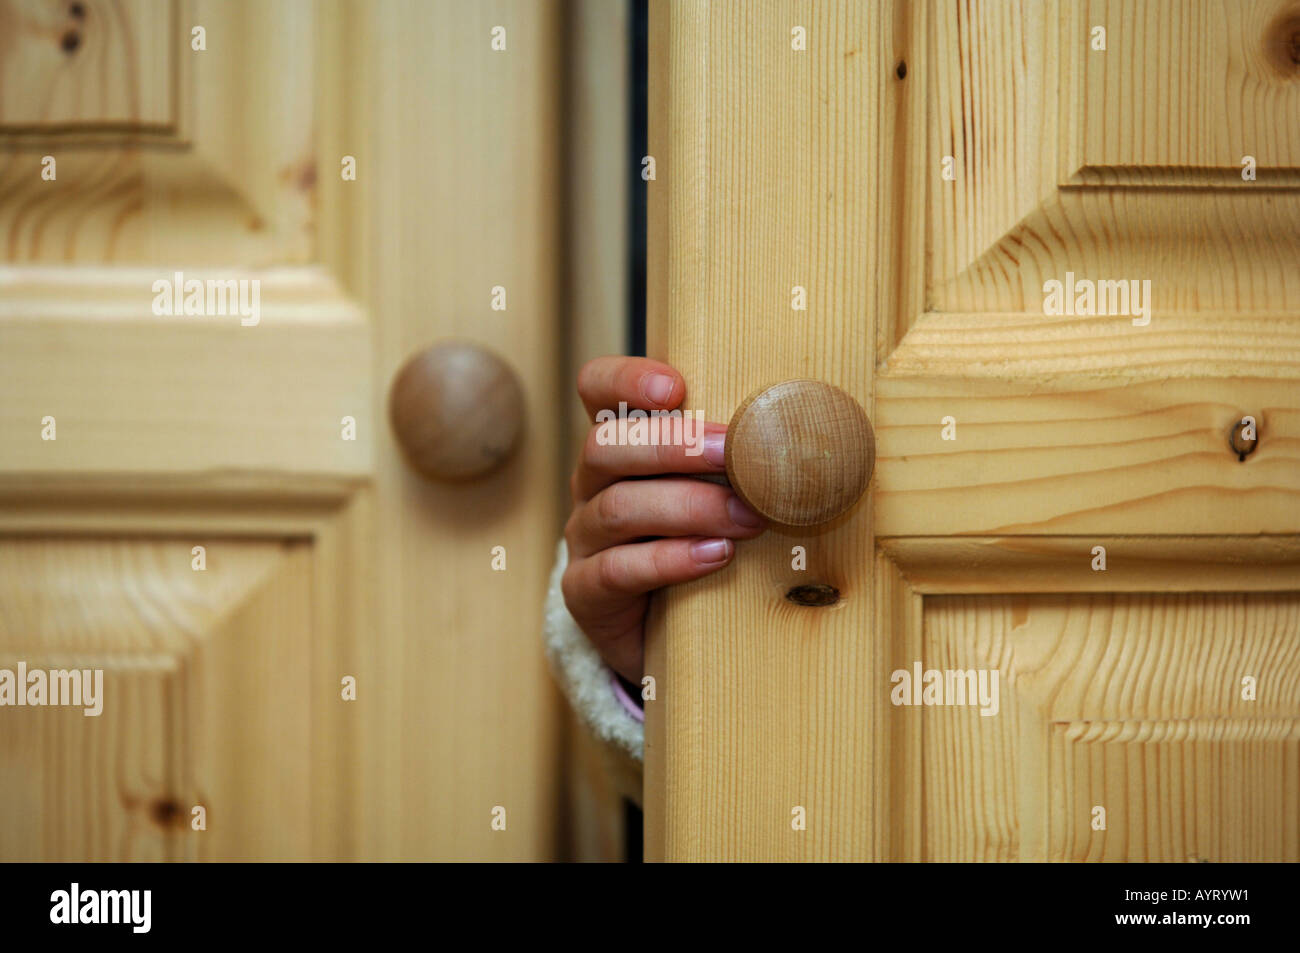 Hand of a child opening a cupboard doorStock Photo